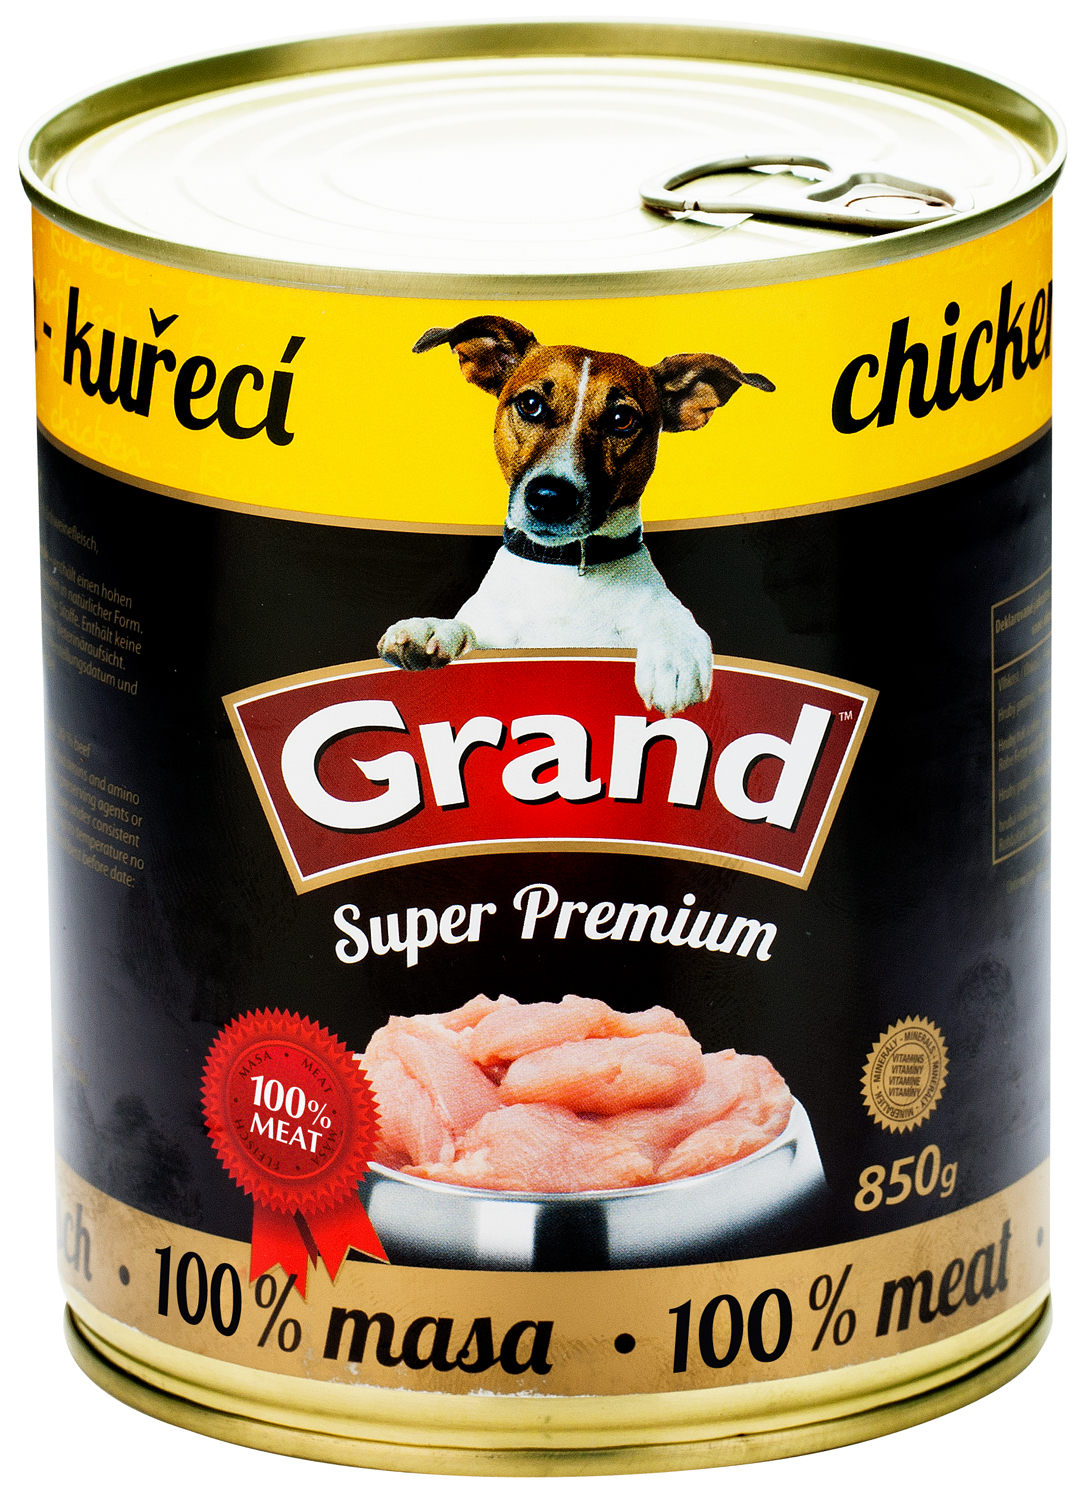 GRAND SuperPremium Kuřecí - DOG 850g